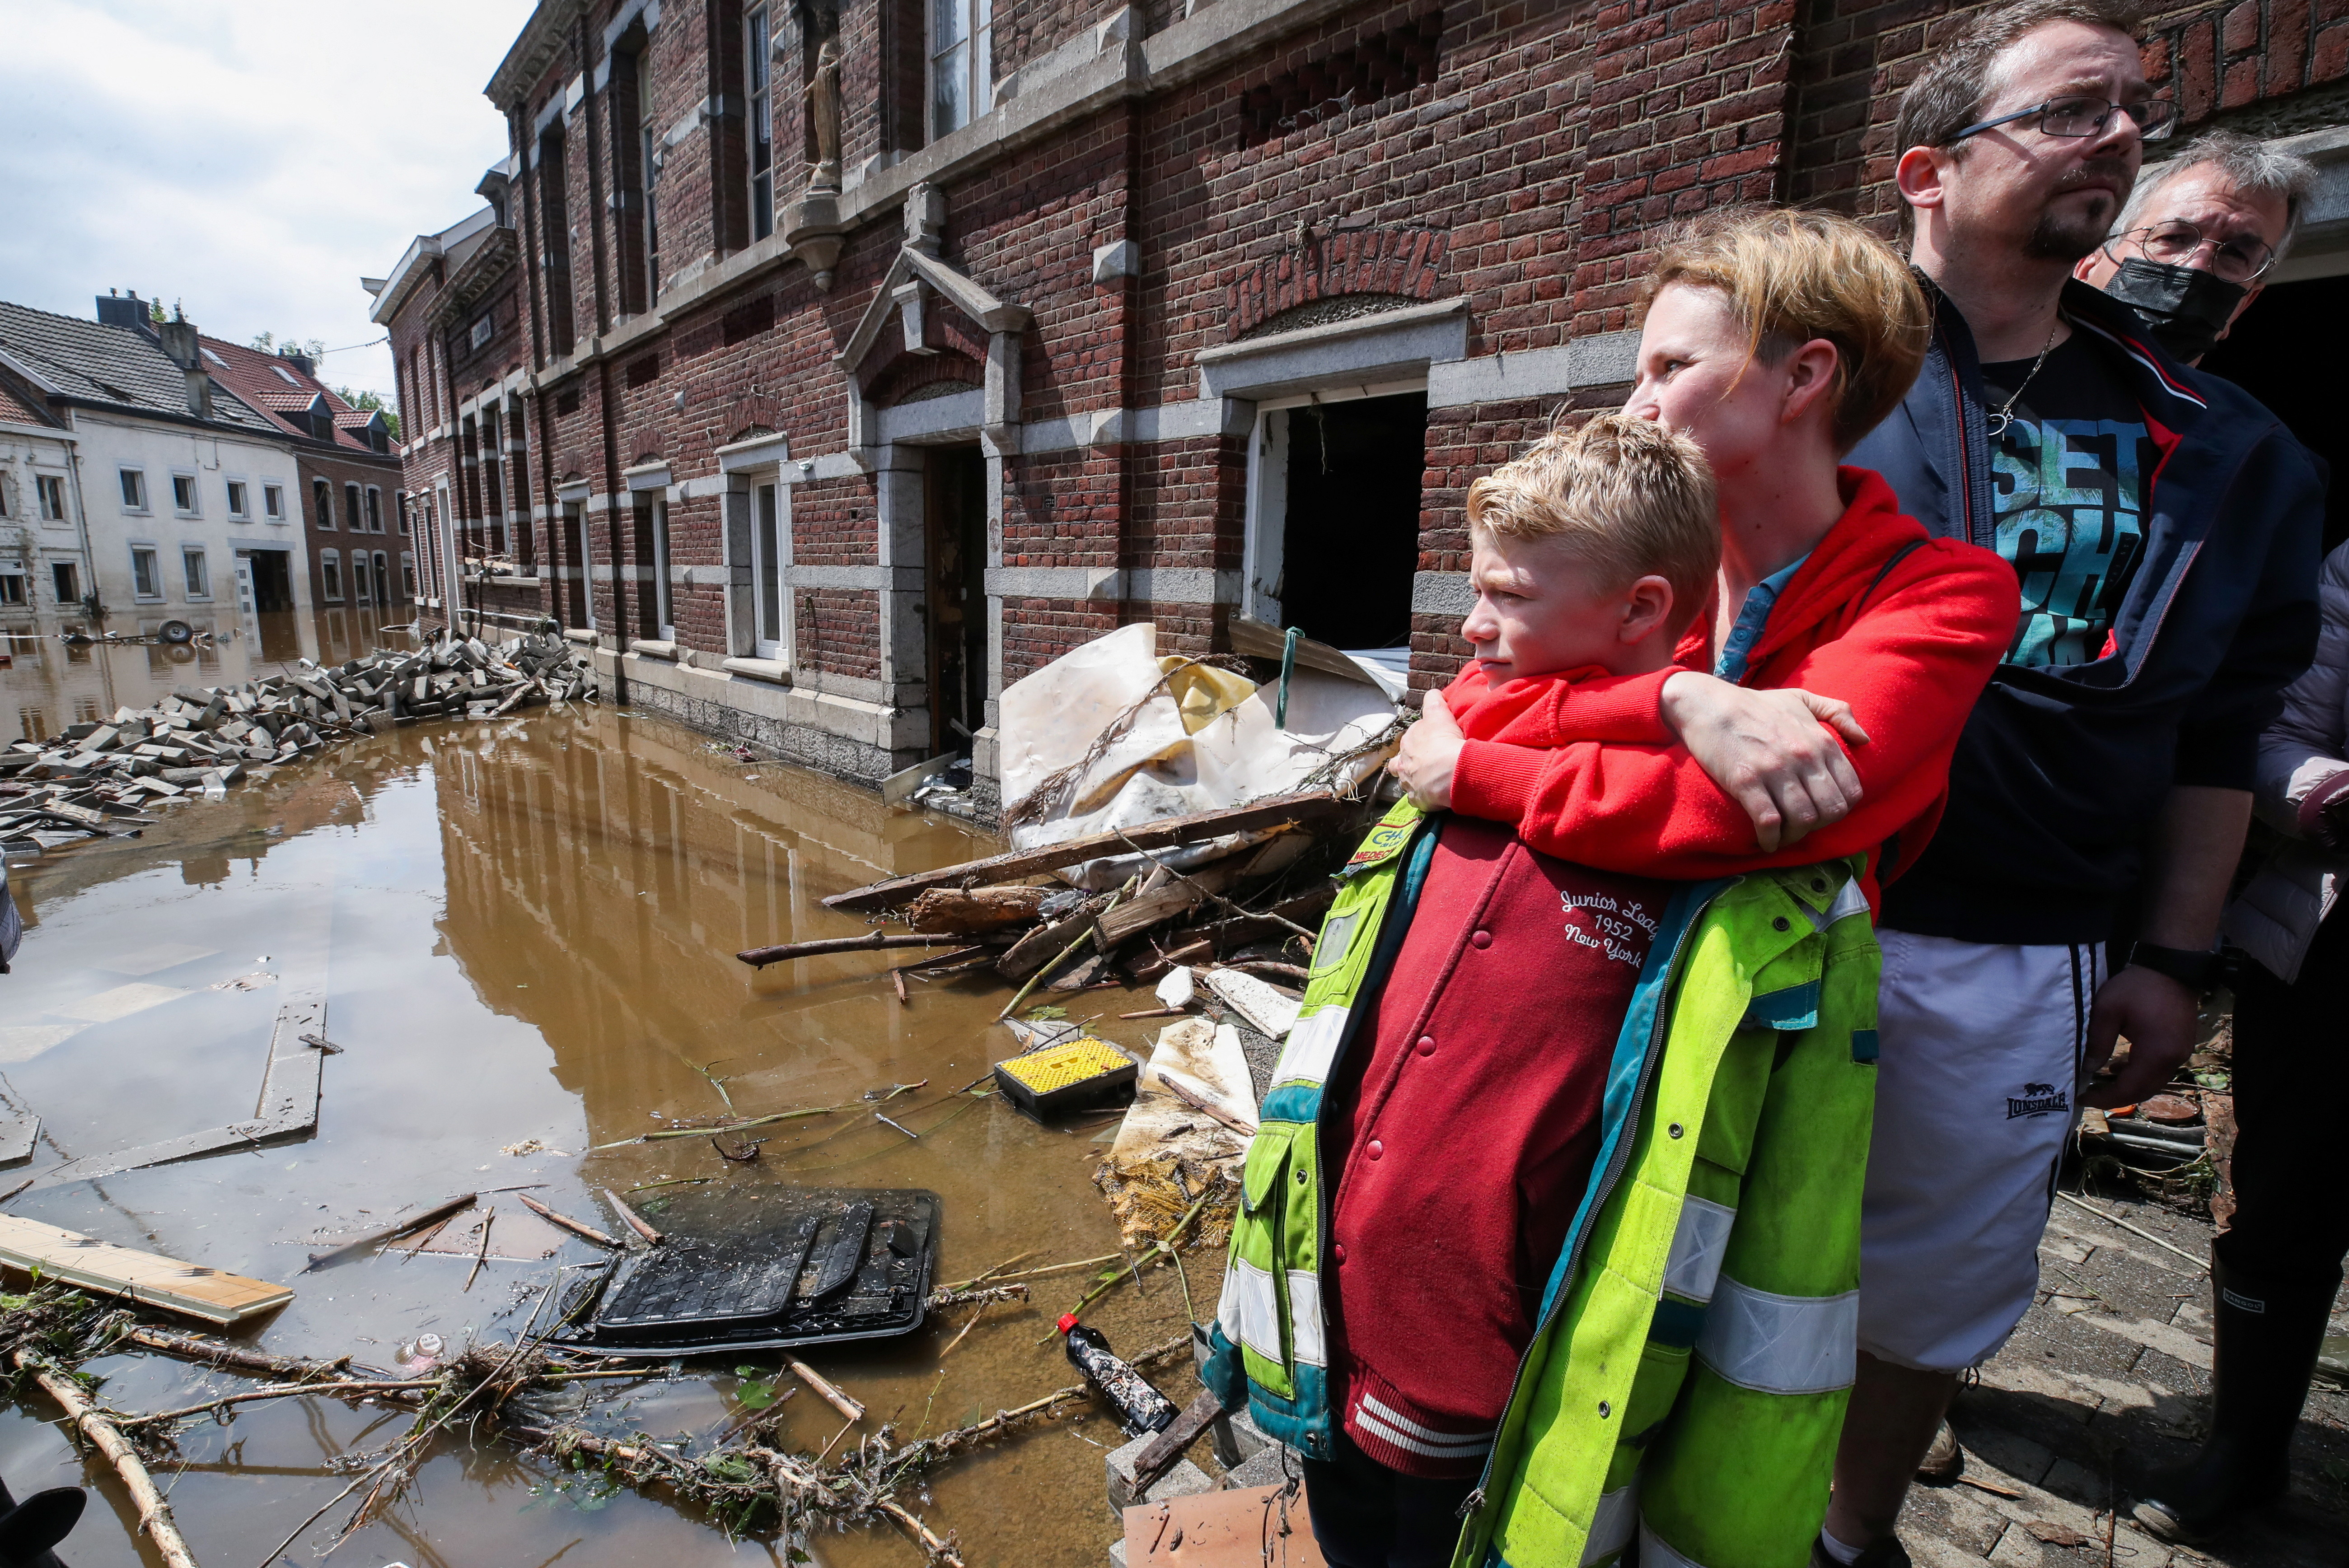 Madeline Brasseur, 37, Paul Brasseur, 42, with their son Samuel, 12, embrace each other at an area affected by floods, following heavy rainfalls, in Pepinster, Belgium, July 17, 2021. REUTERS/Yves Herman - RC2CMO9IMGTC